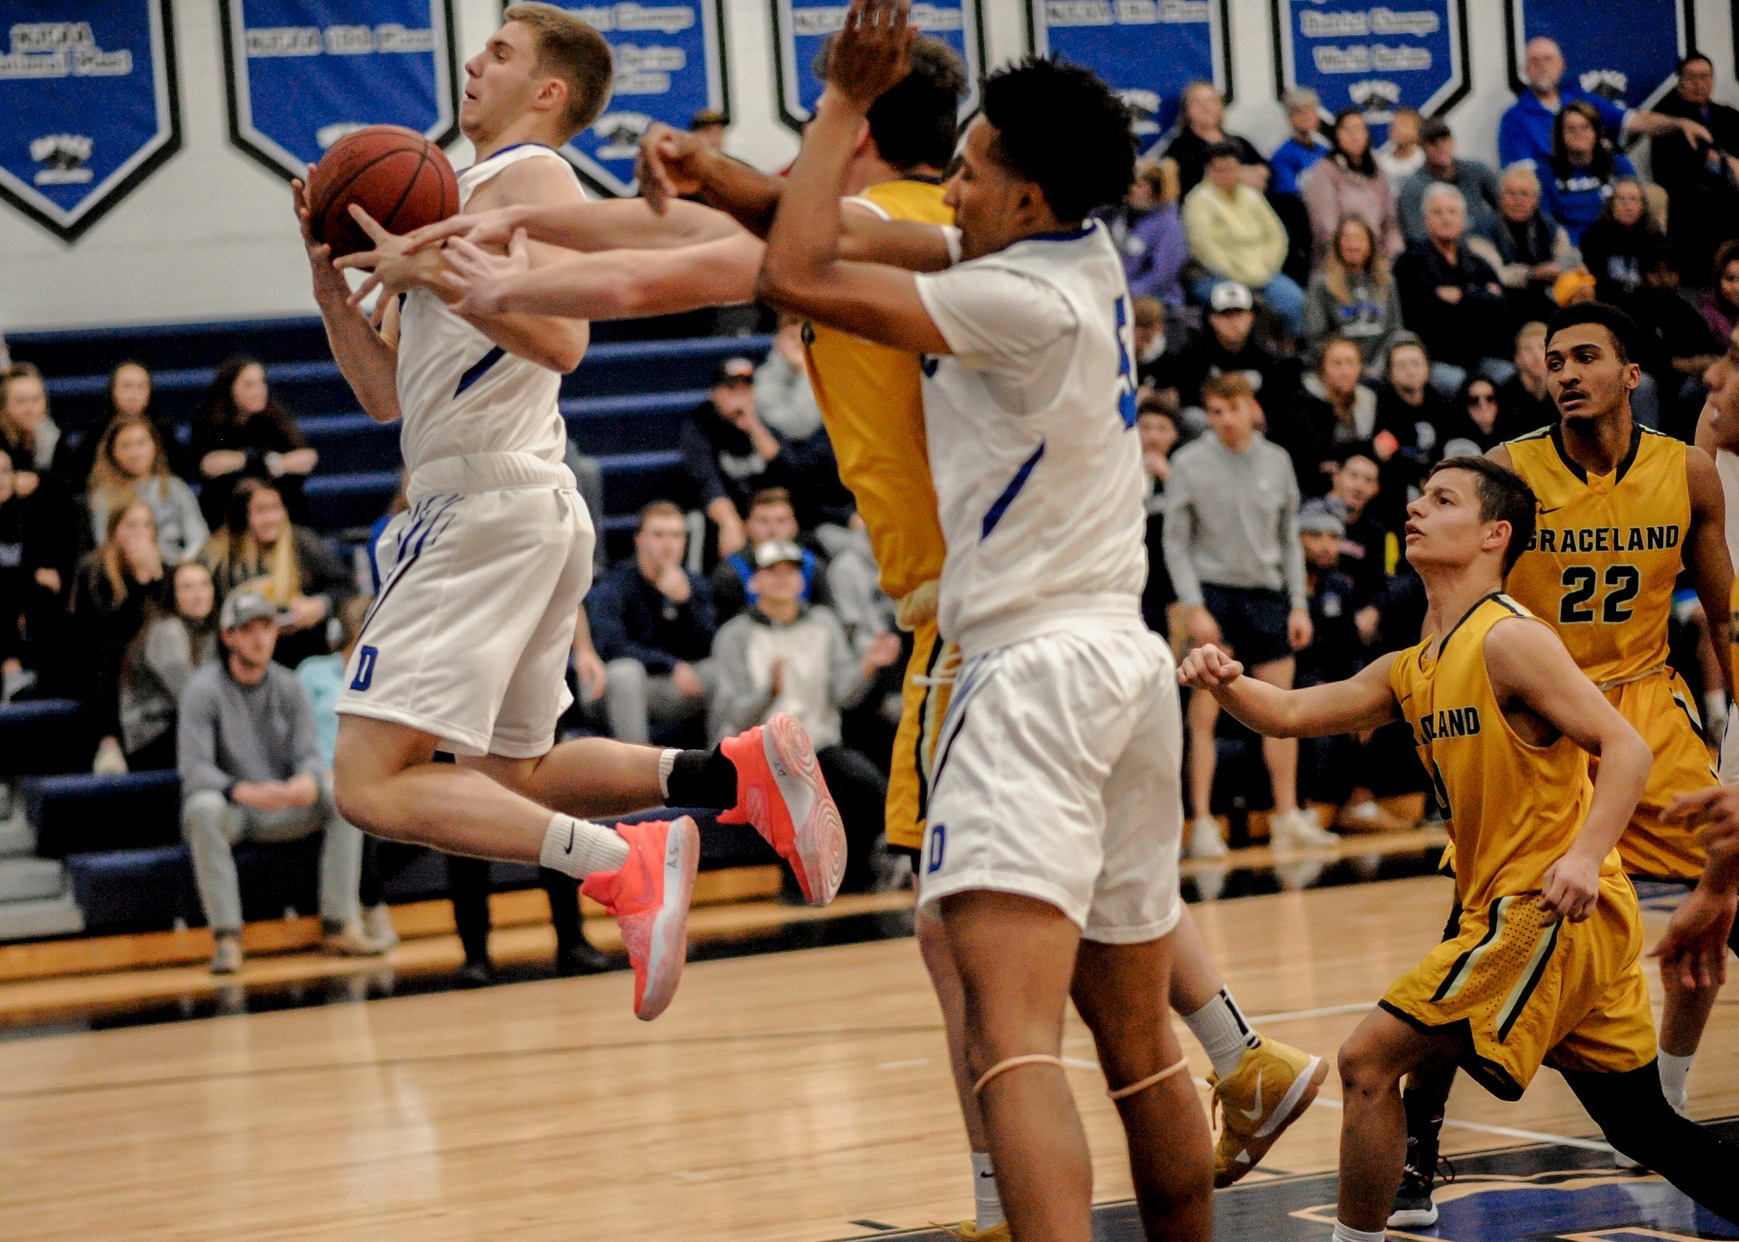 Lester's 22 points lead DMACC men's basketball team to 105-71 win